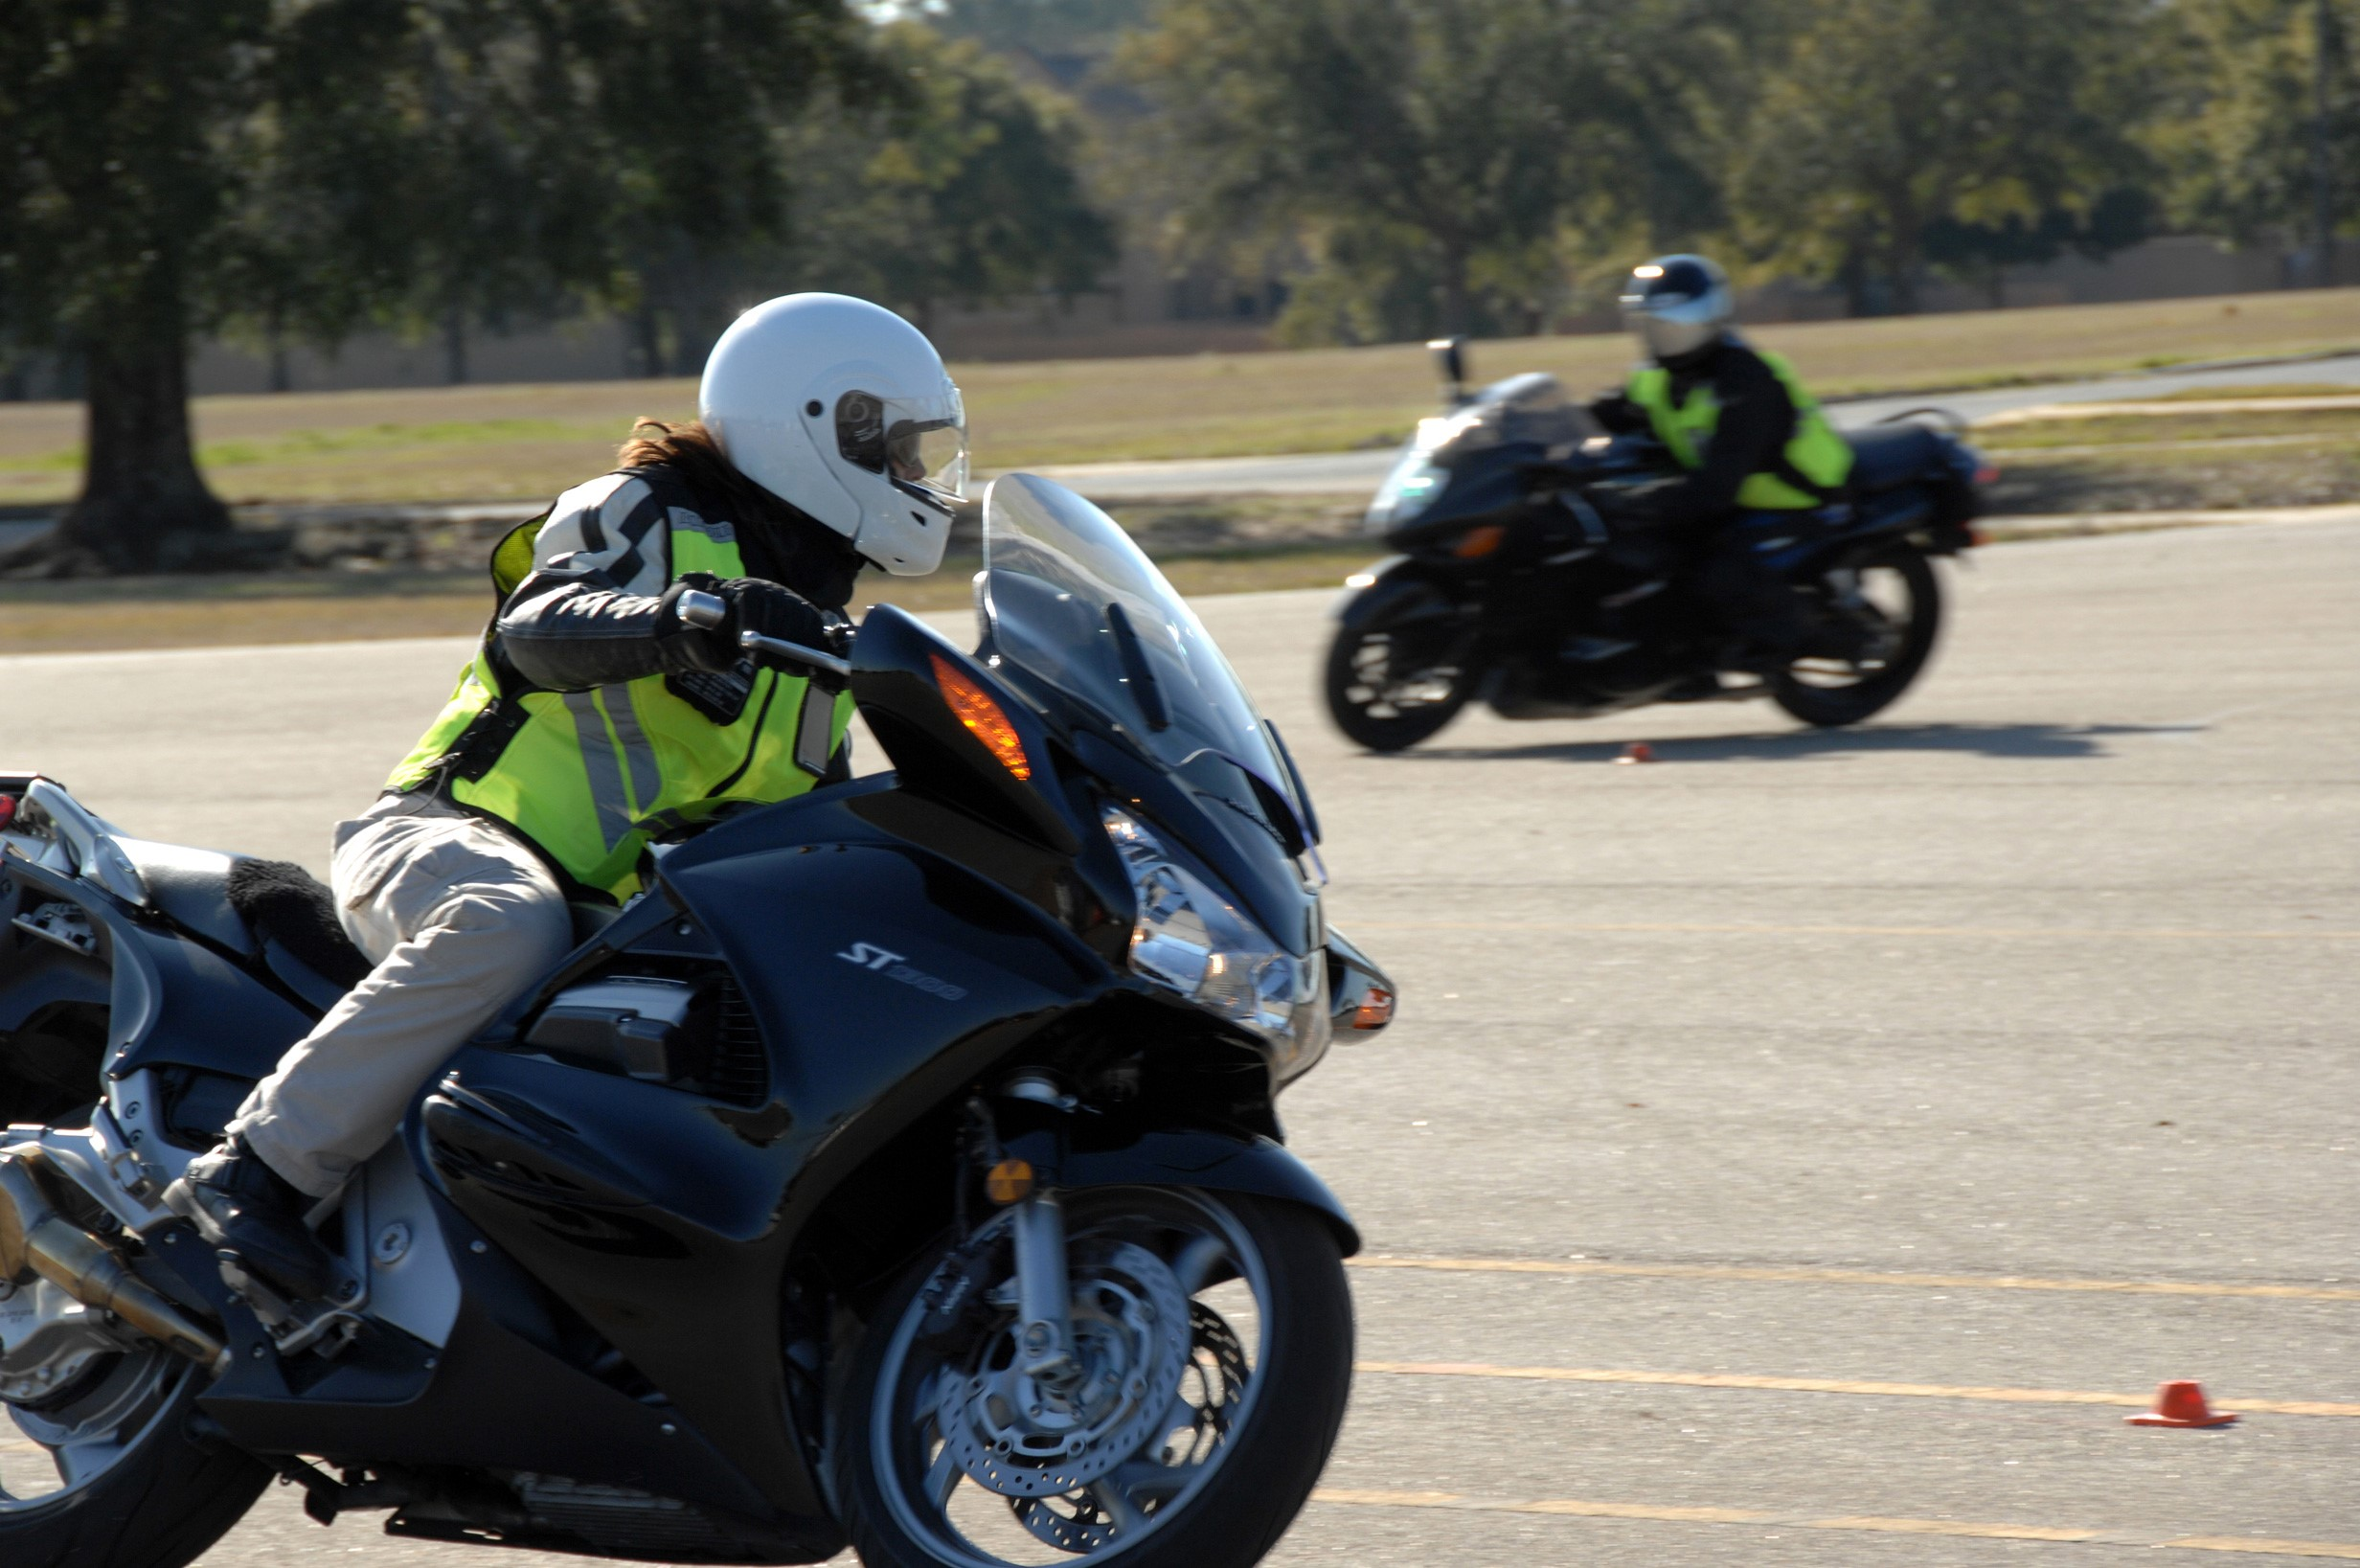 Army guard mandates certification for motorcyclists national guard army guard mandates certification for motorcyclists 1betcityfo Gallery